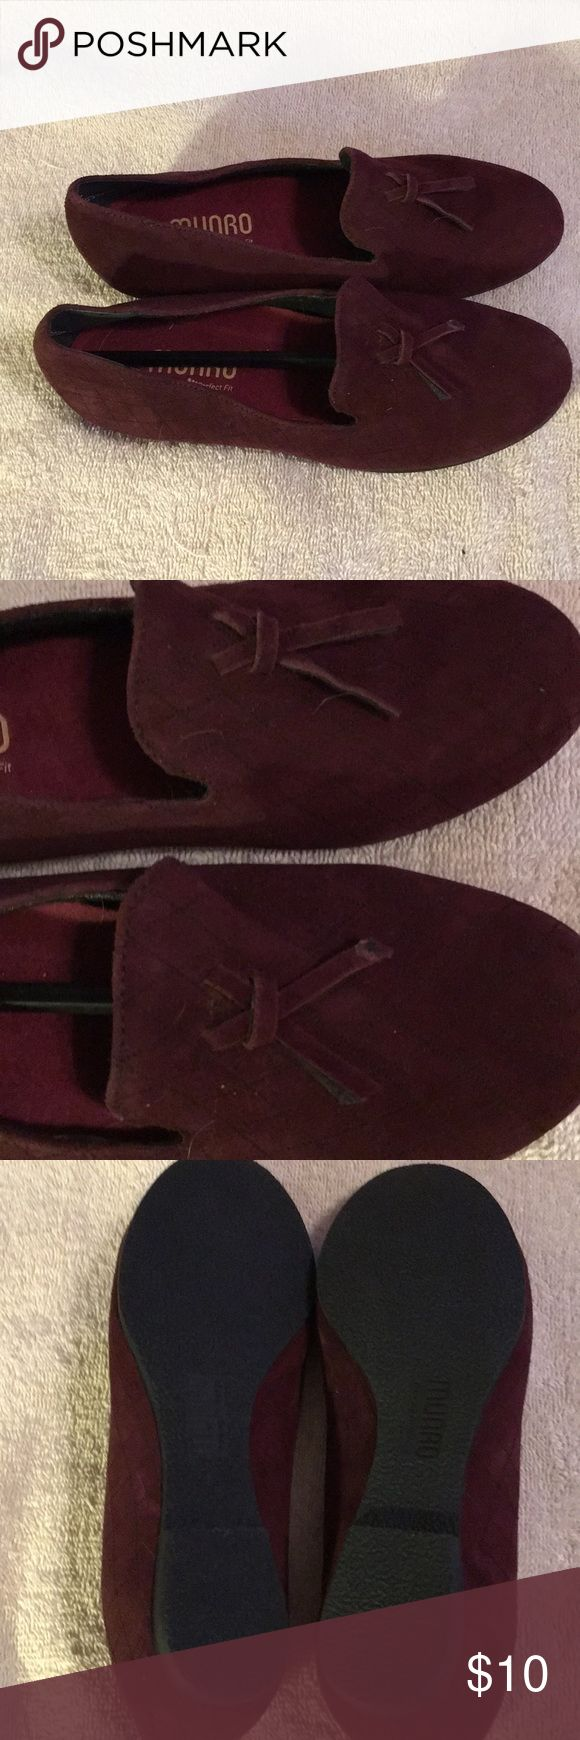 Maroon Munro shoes Munro shoes. Tassels are missing. Never worn. Offers welcome Shoes Flats & Loafers